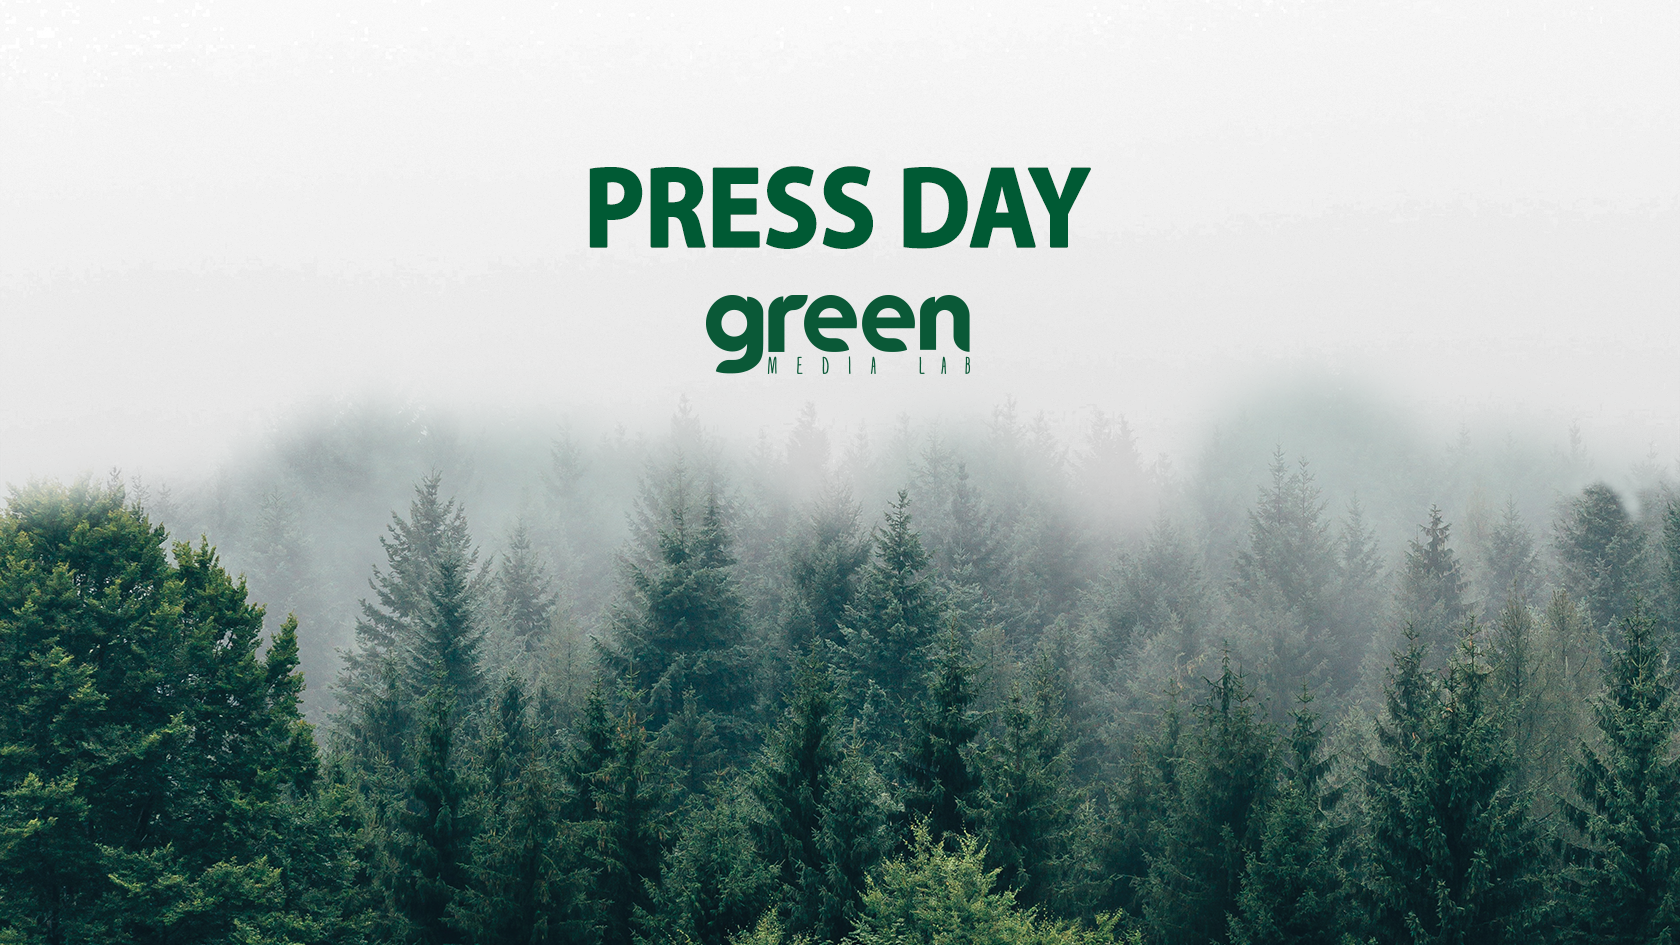 Press Day di Green Media Lab 2018